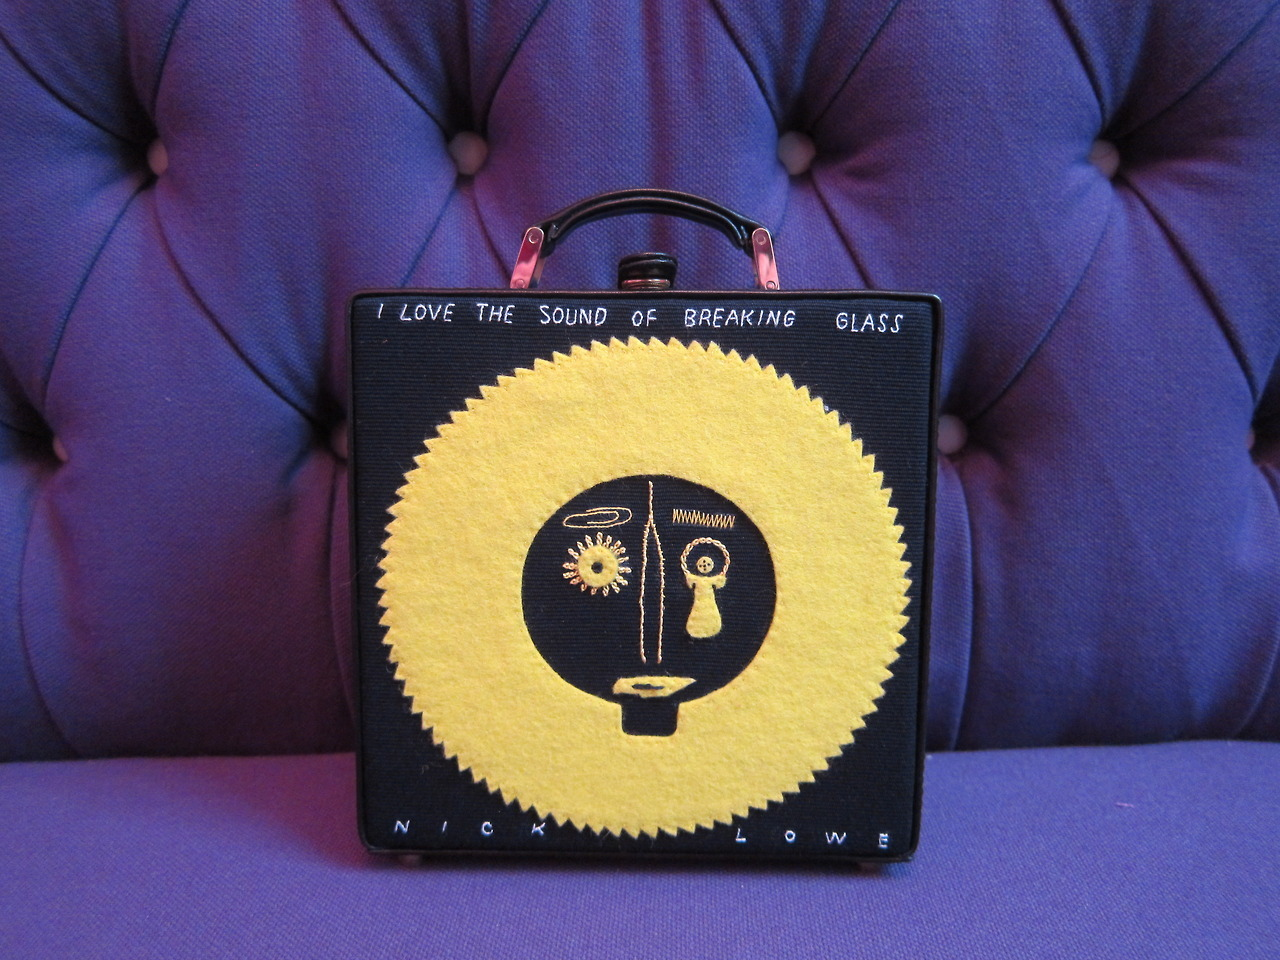 "Nick Lowe limited edition 7"" clutch by Olympia Le-Tan, available soon exclusively at olympialetan.com."